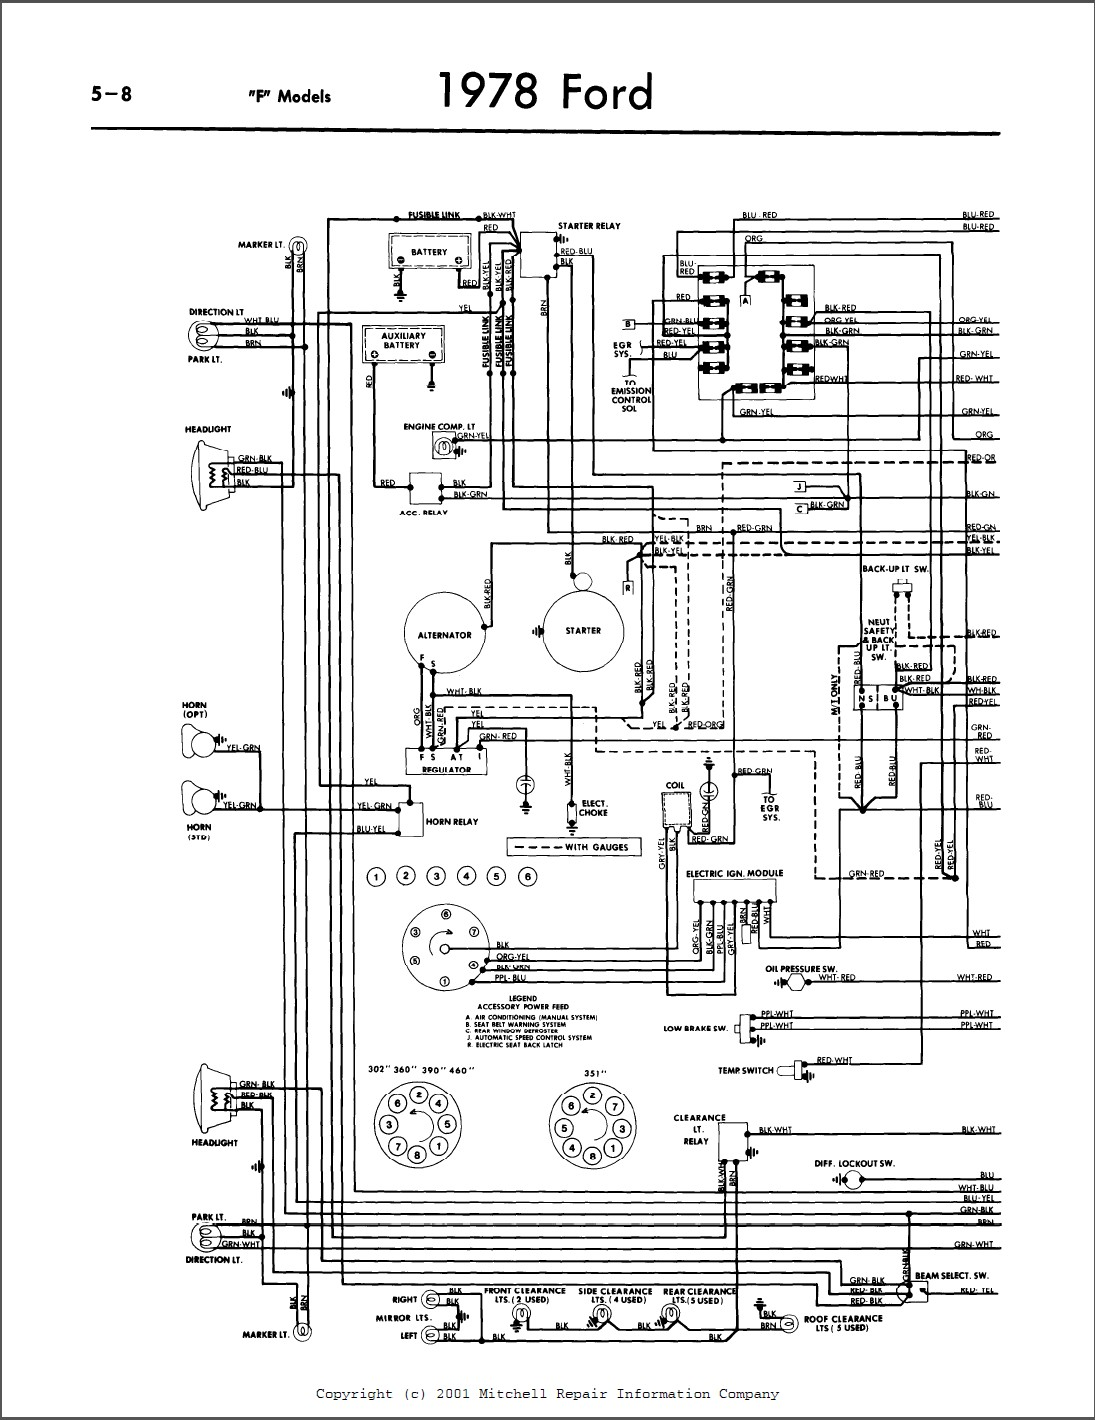 1978 Ford Dual Tank Diagram: I Need to Know How to Redo